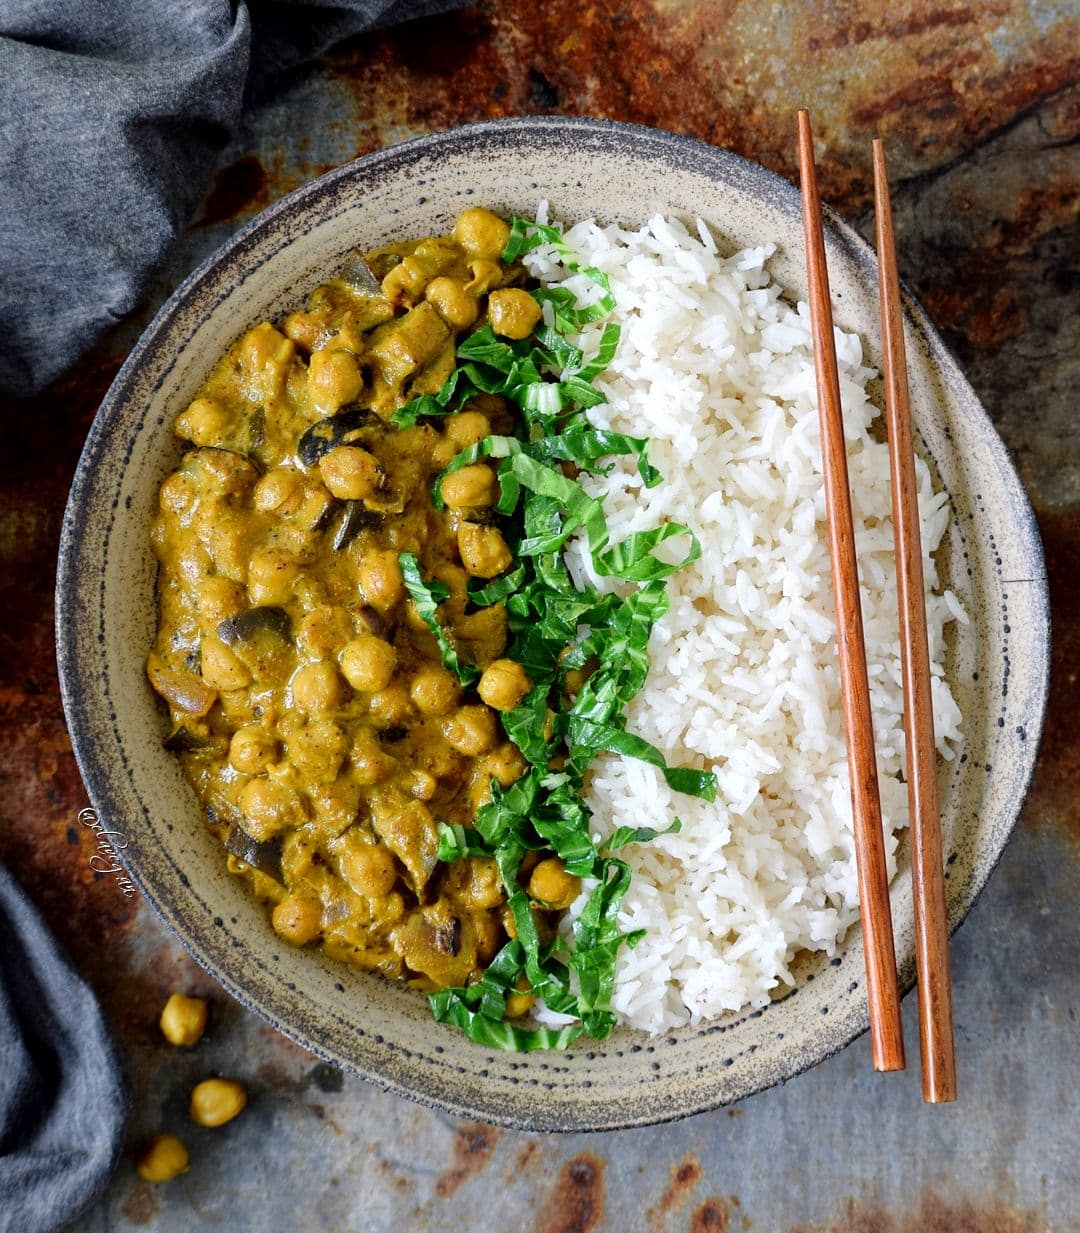 Vegan coconut chickpea curry recipe with eggplant and spinach (oil-free, gluten-free recipe)